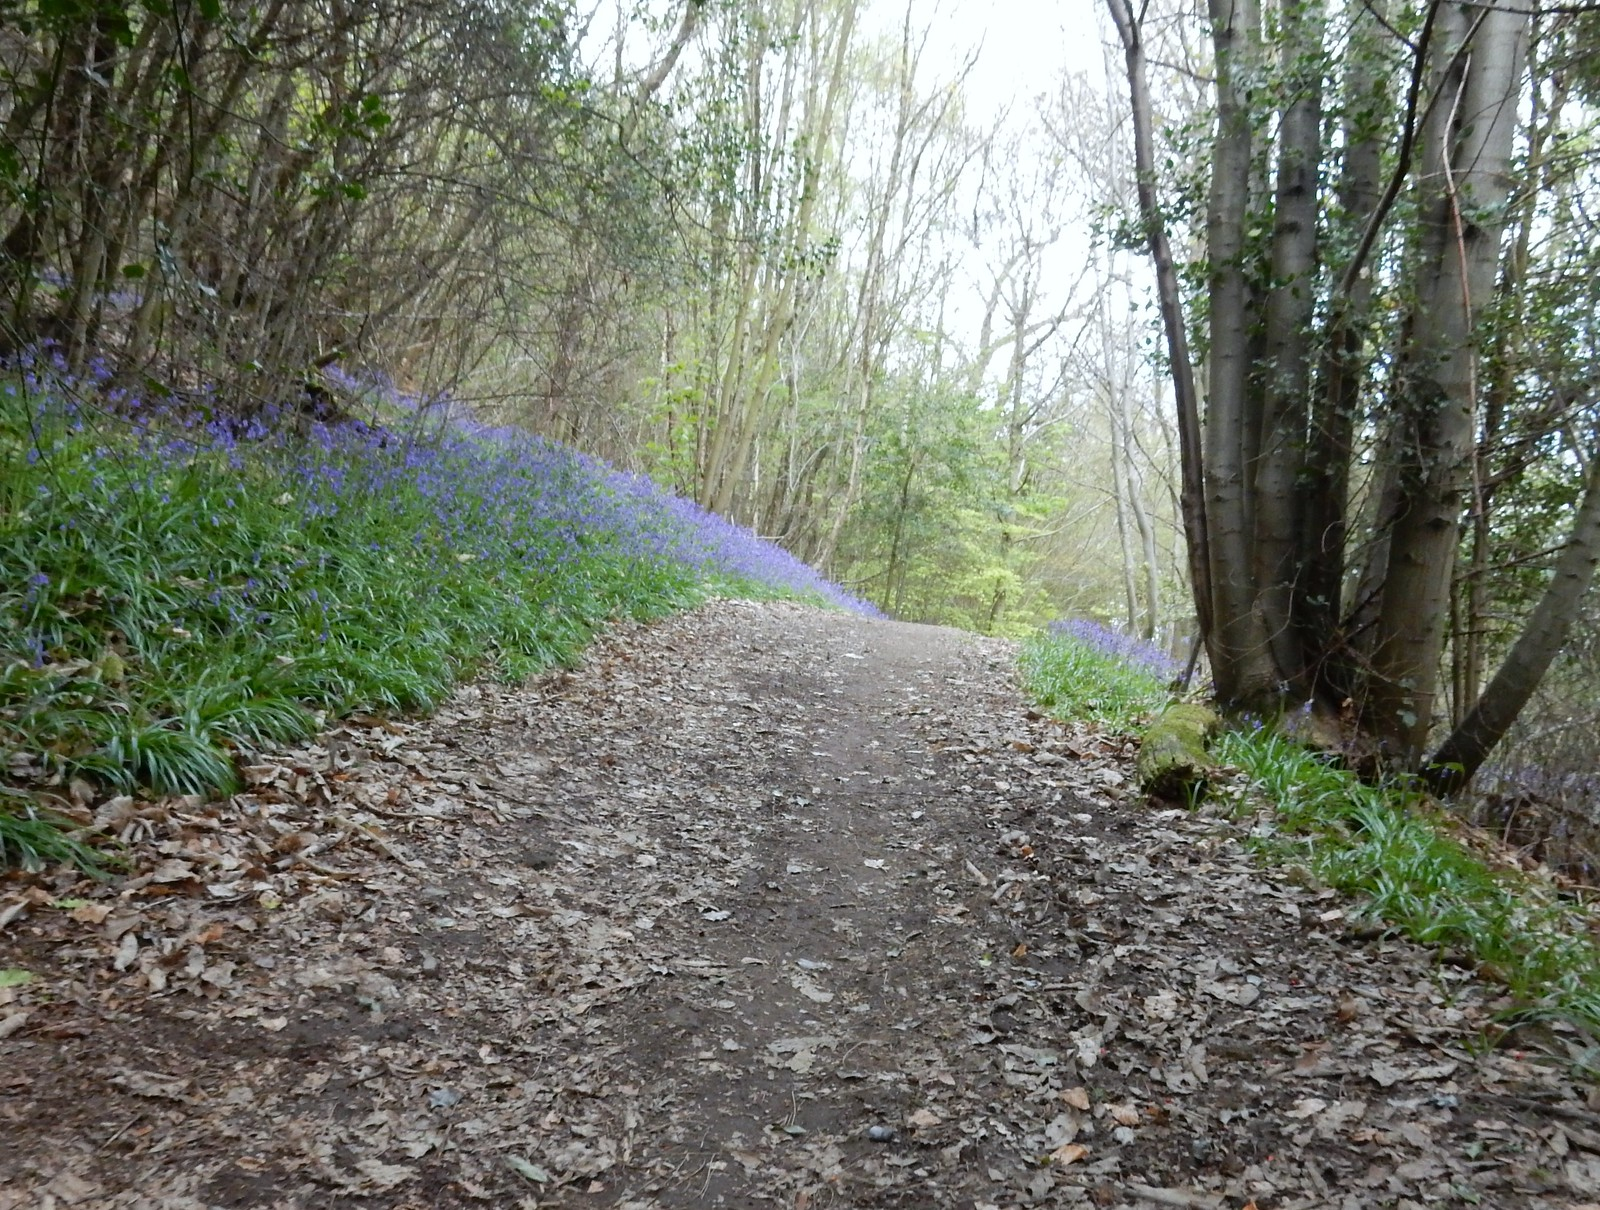 Bluebells Ide Hill Hurst Green to Chiddingstone Causeway